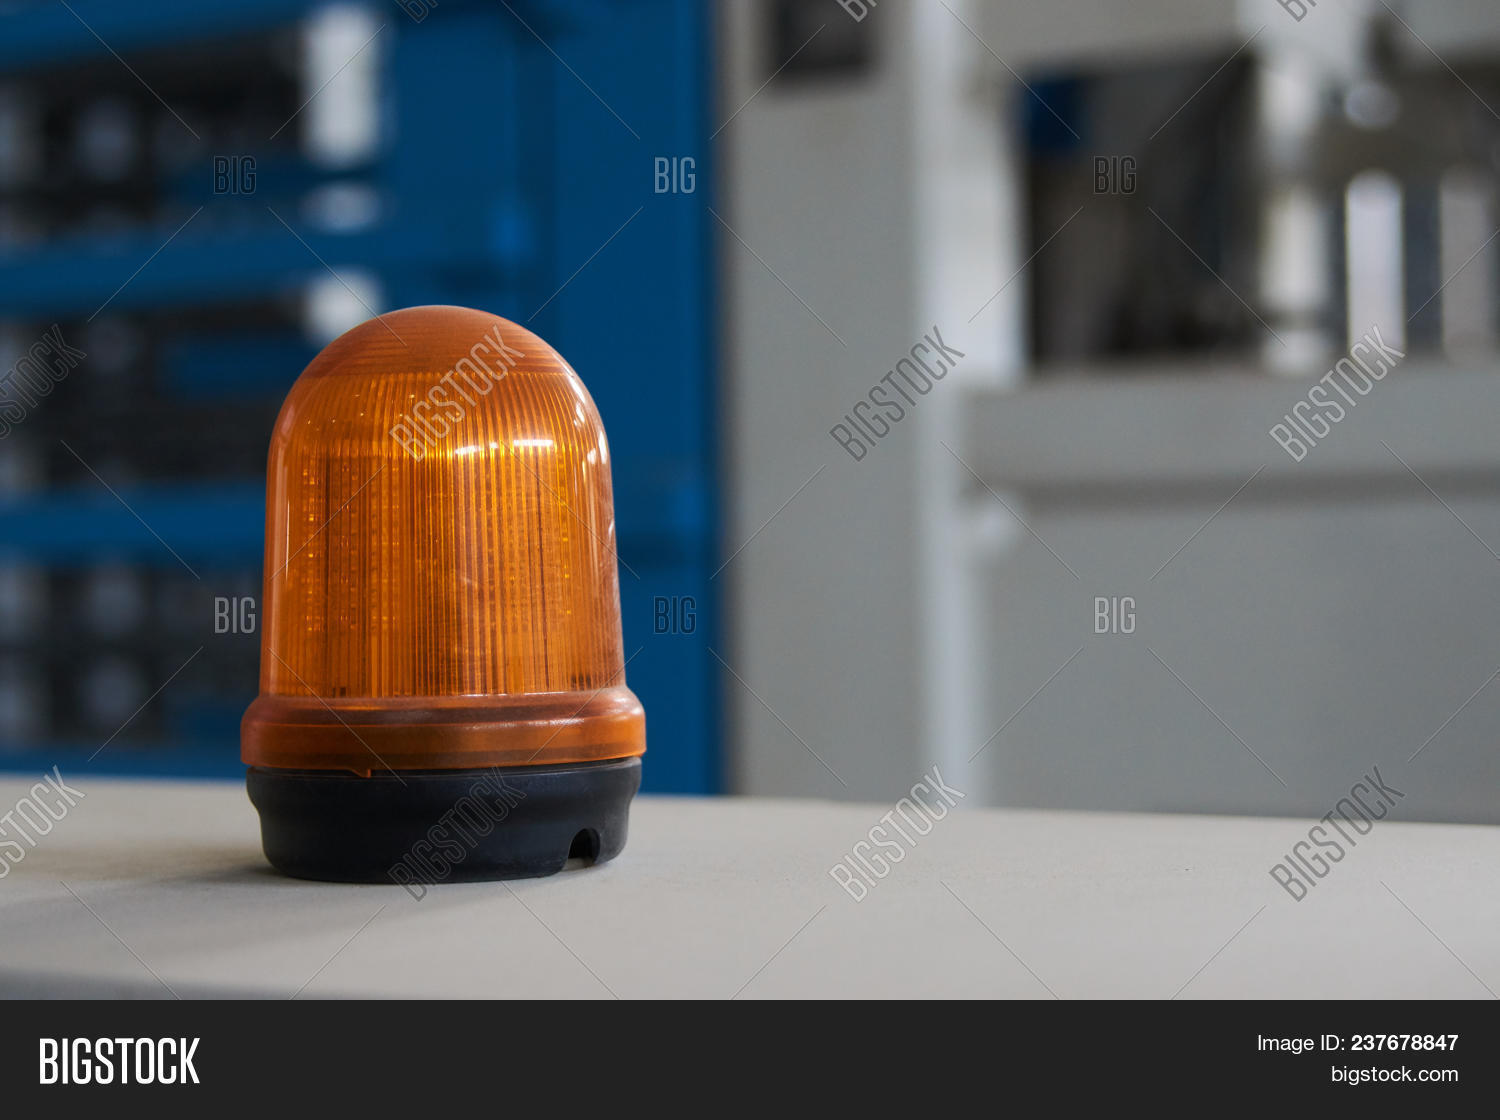 Warning Light Alarm Image Photo Free Trial Bigstock Emergency And For Machine Working Lighting In The Factory Close Up